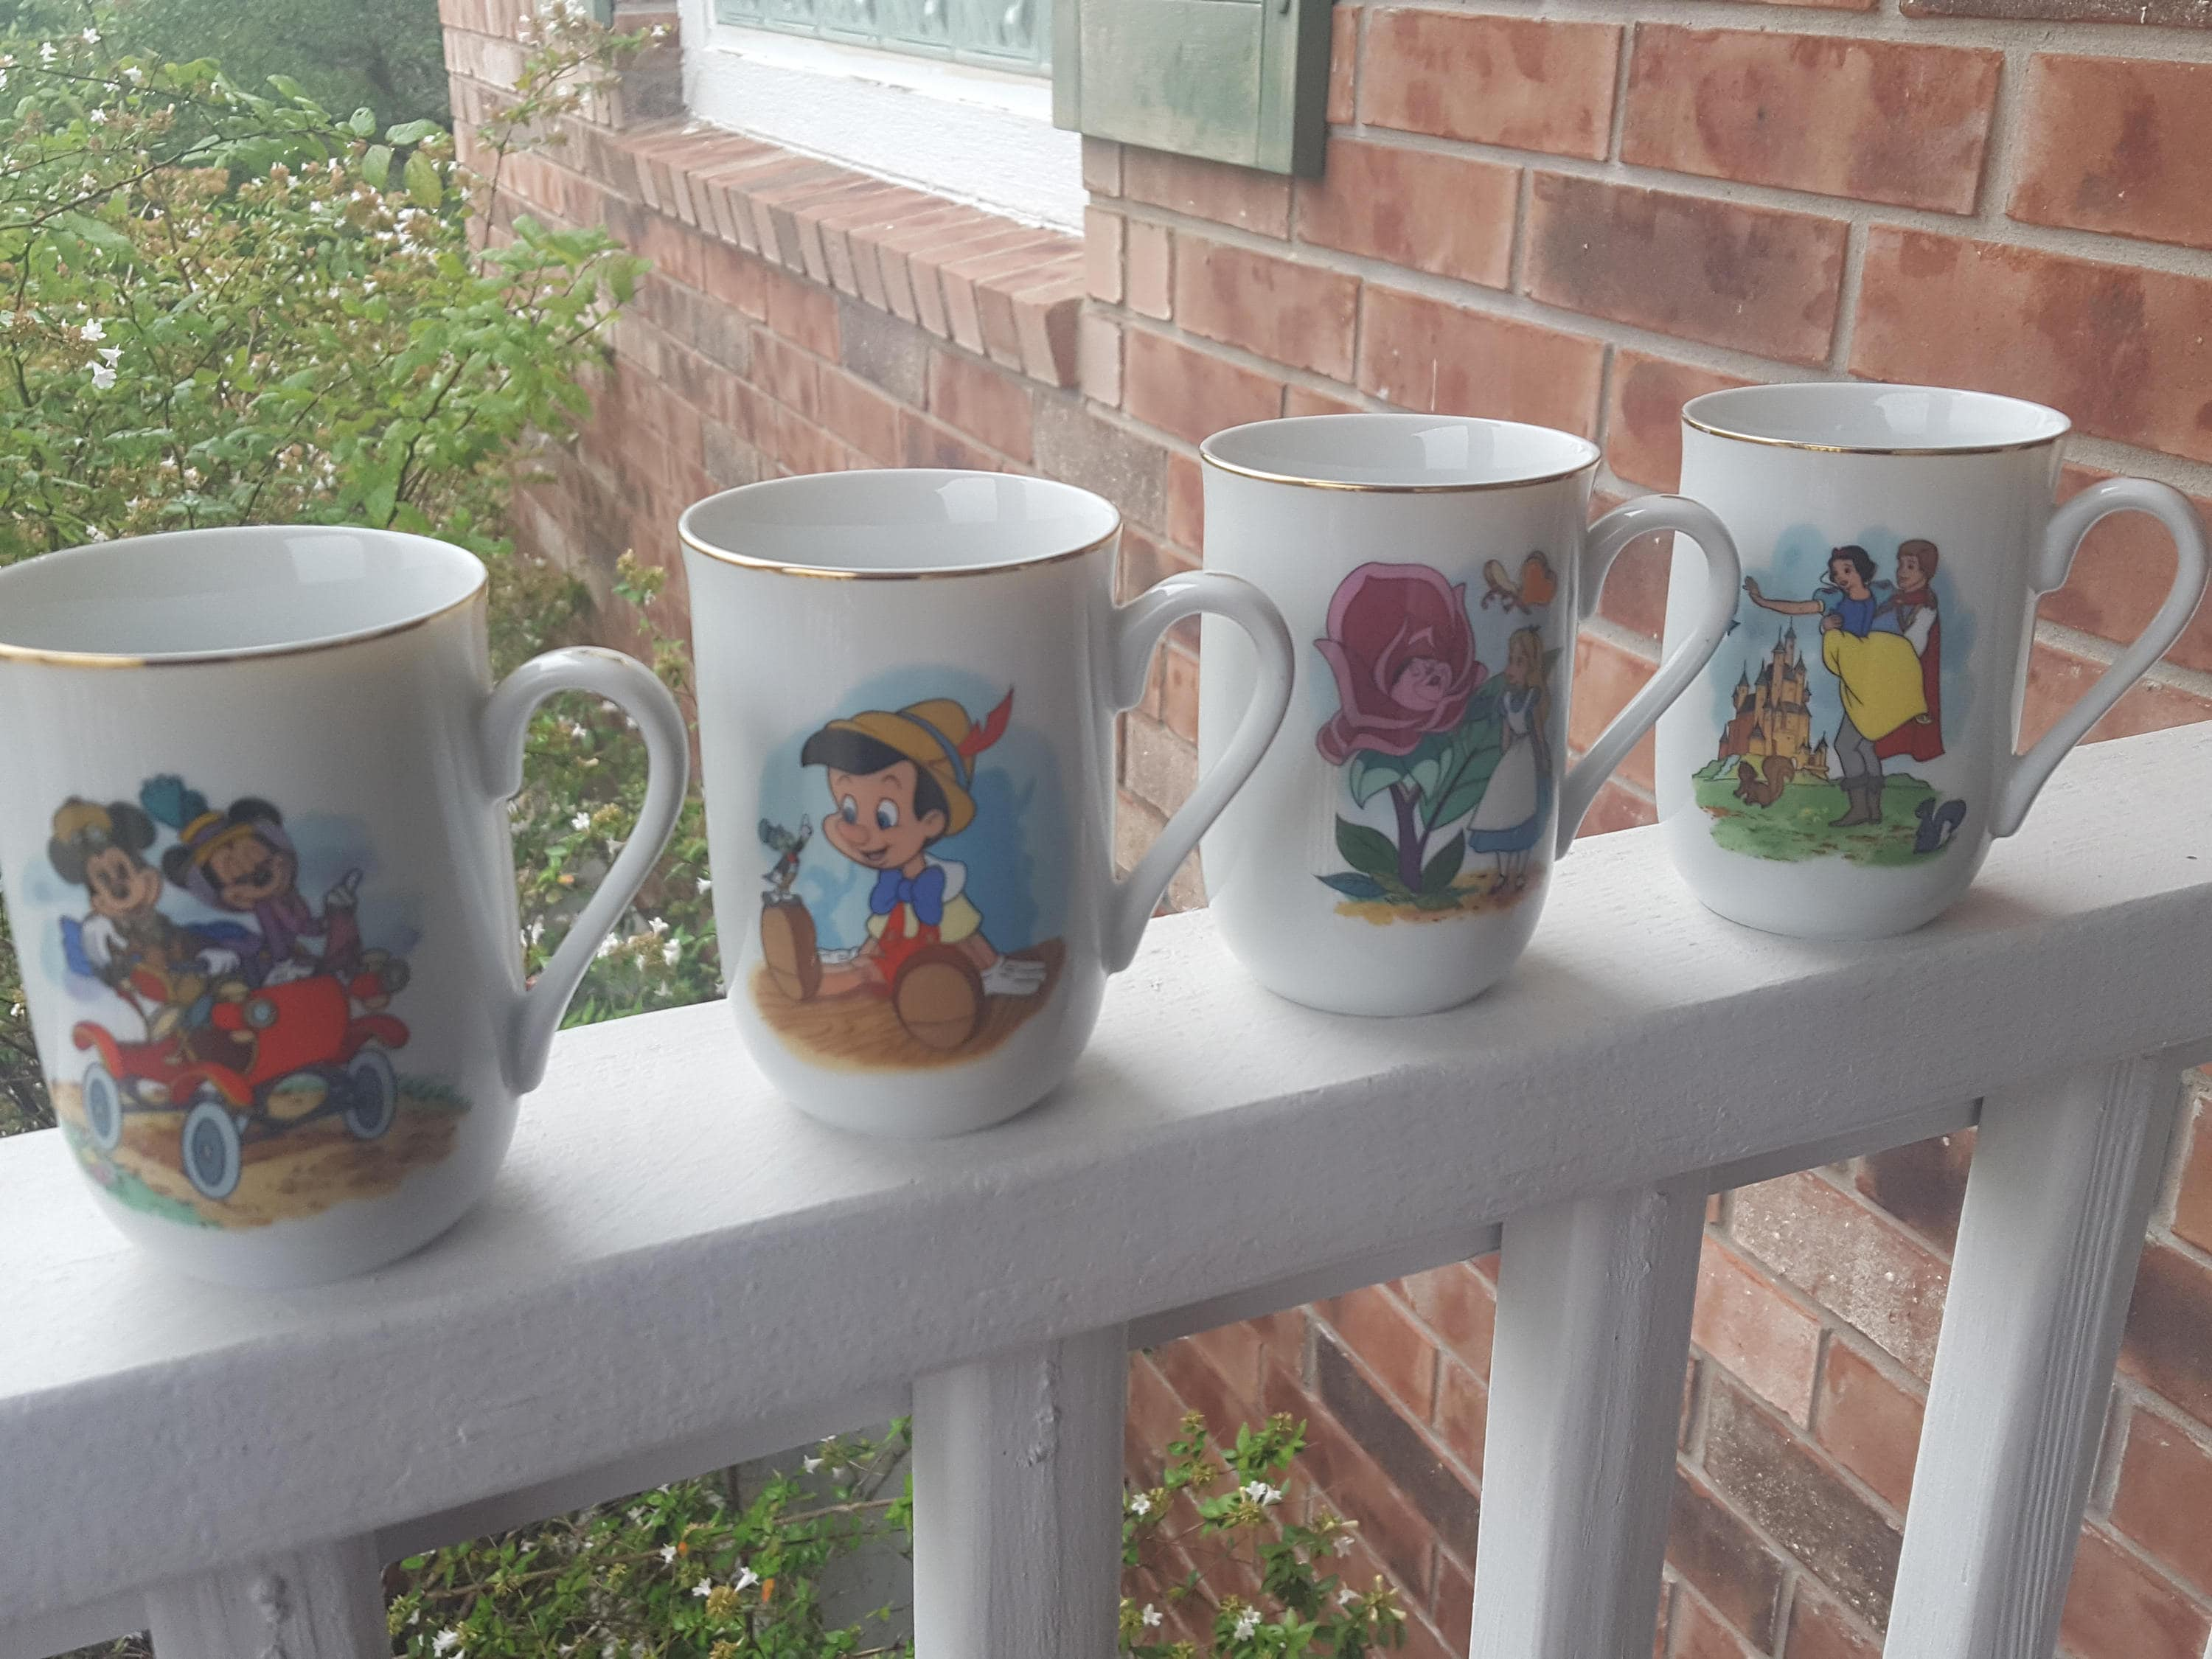 Disney Cups Vintage Disney Classic Mugs Collection Mickey Mouse Mug Walt Disney Productions Mickey Pinocchio Snow White Alice